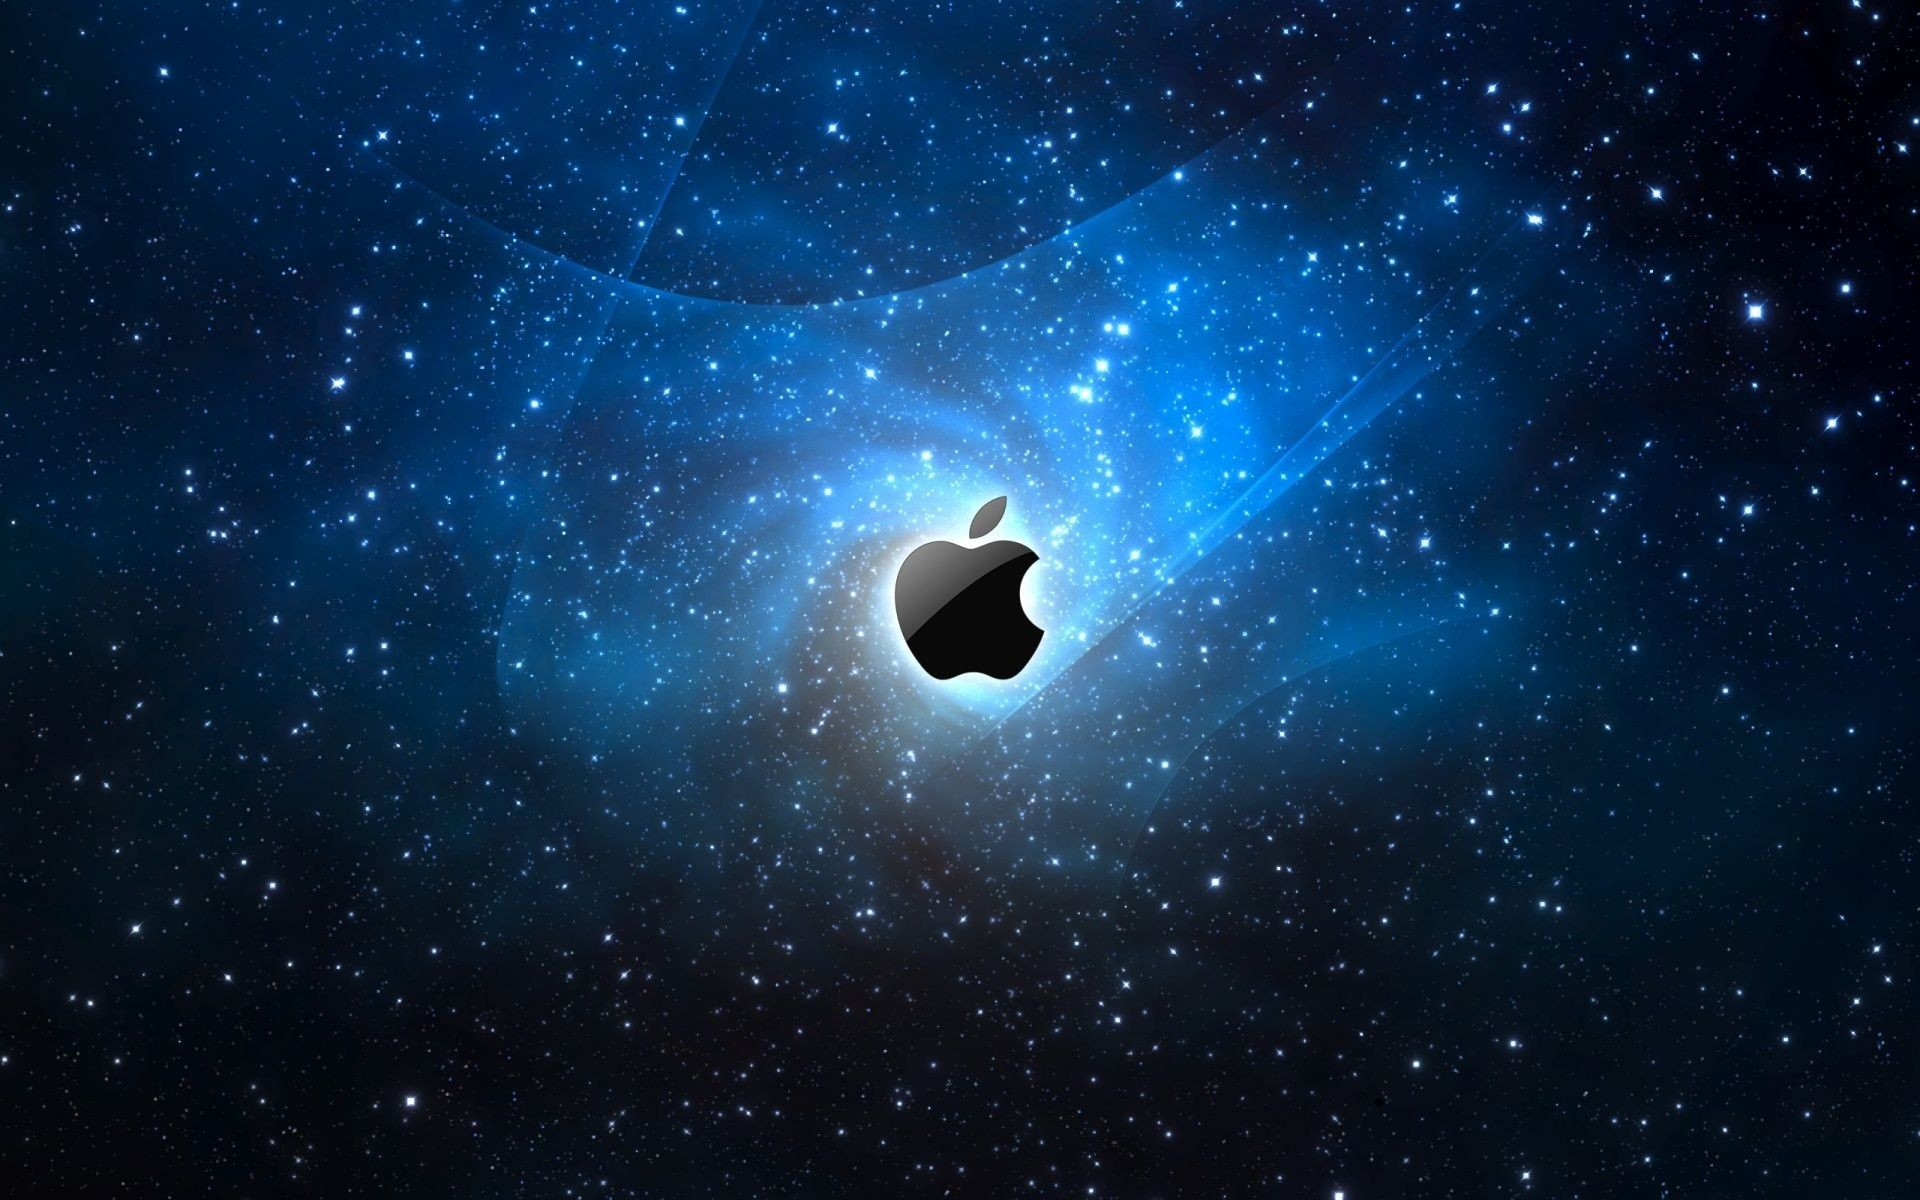 Good Wallpaper High Quality Apple Iphone - 981382-top-apple-logo-hd-wallpaper-1920x1200-images  Pictures_803667.jpg